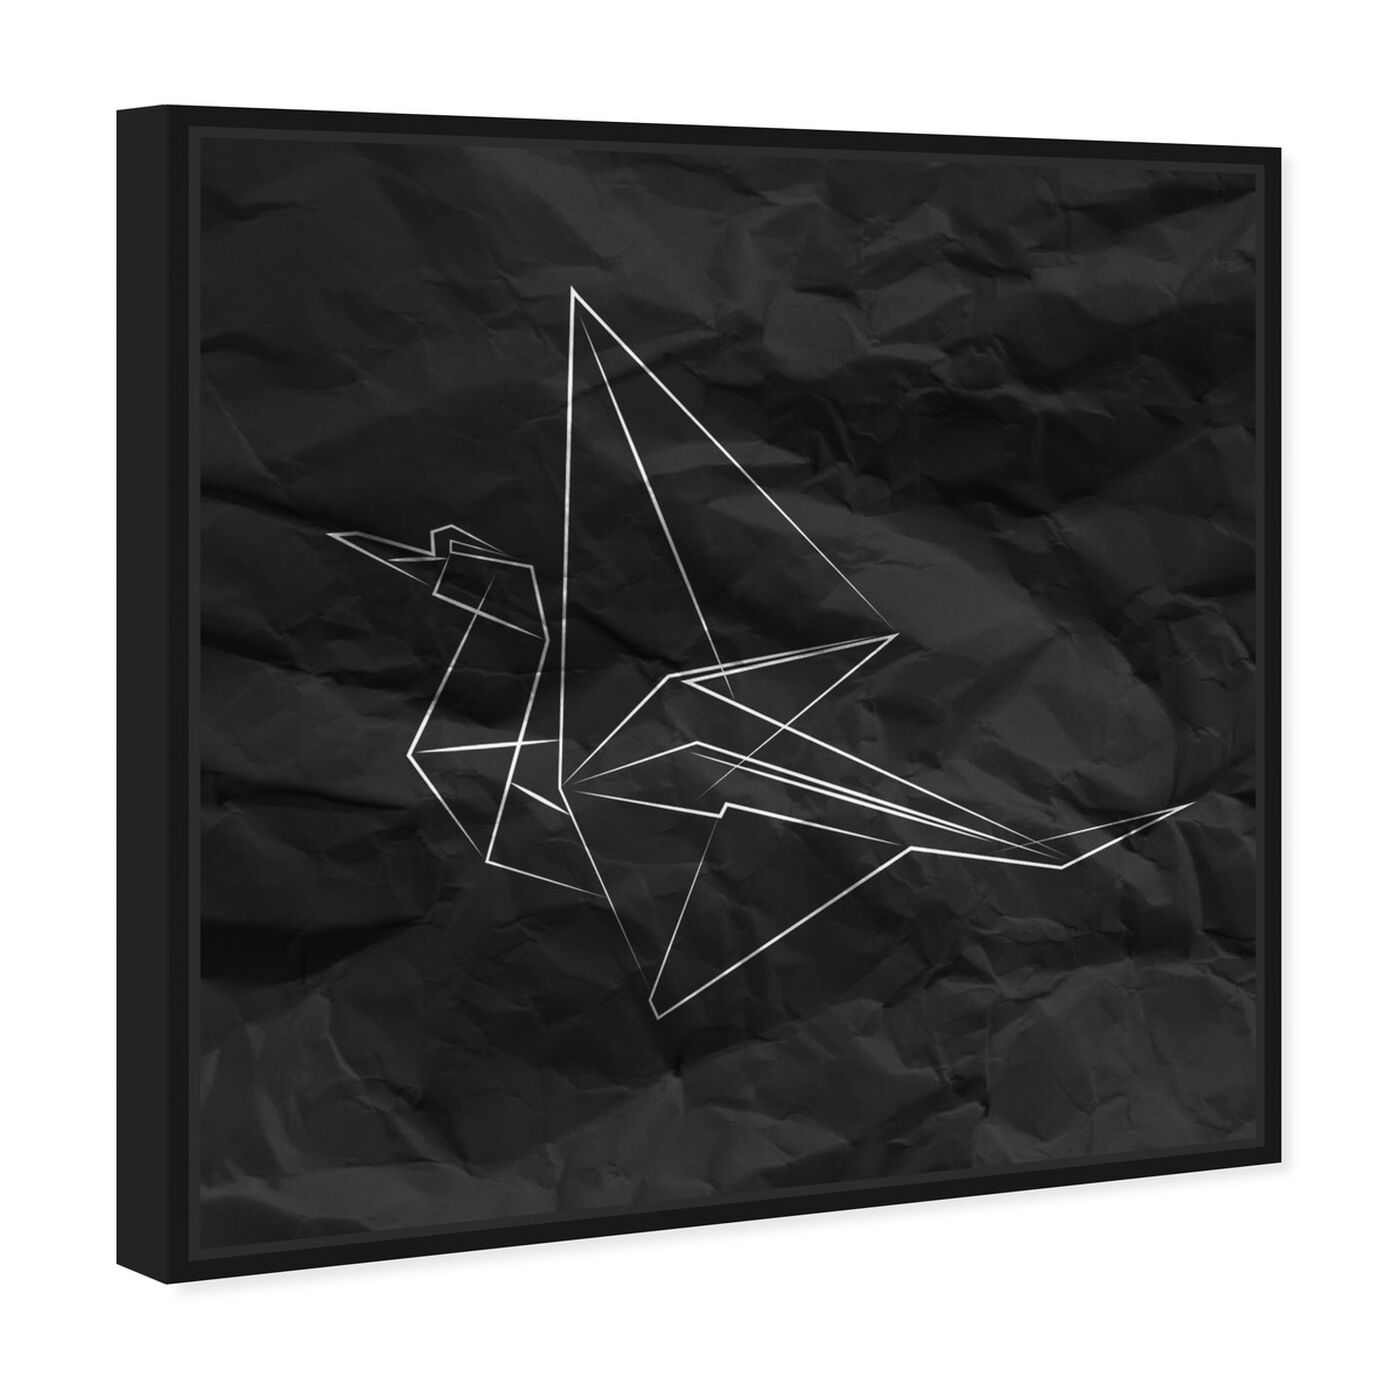 Angled view of Origami Crane featuring abstract and geometric art.